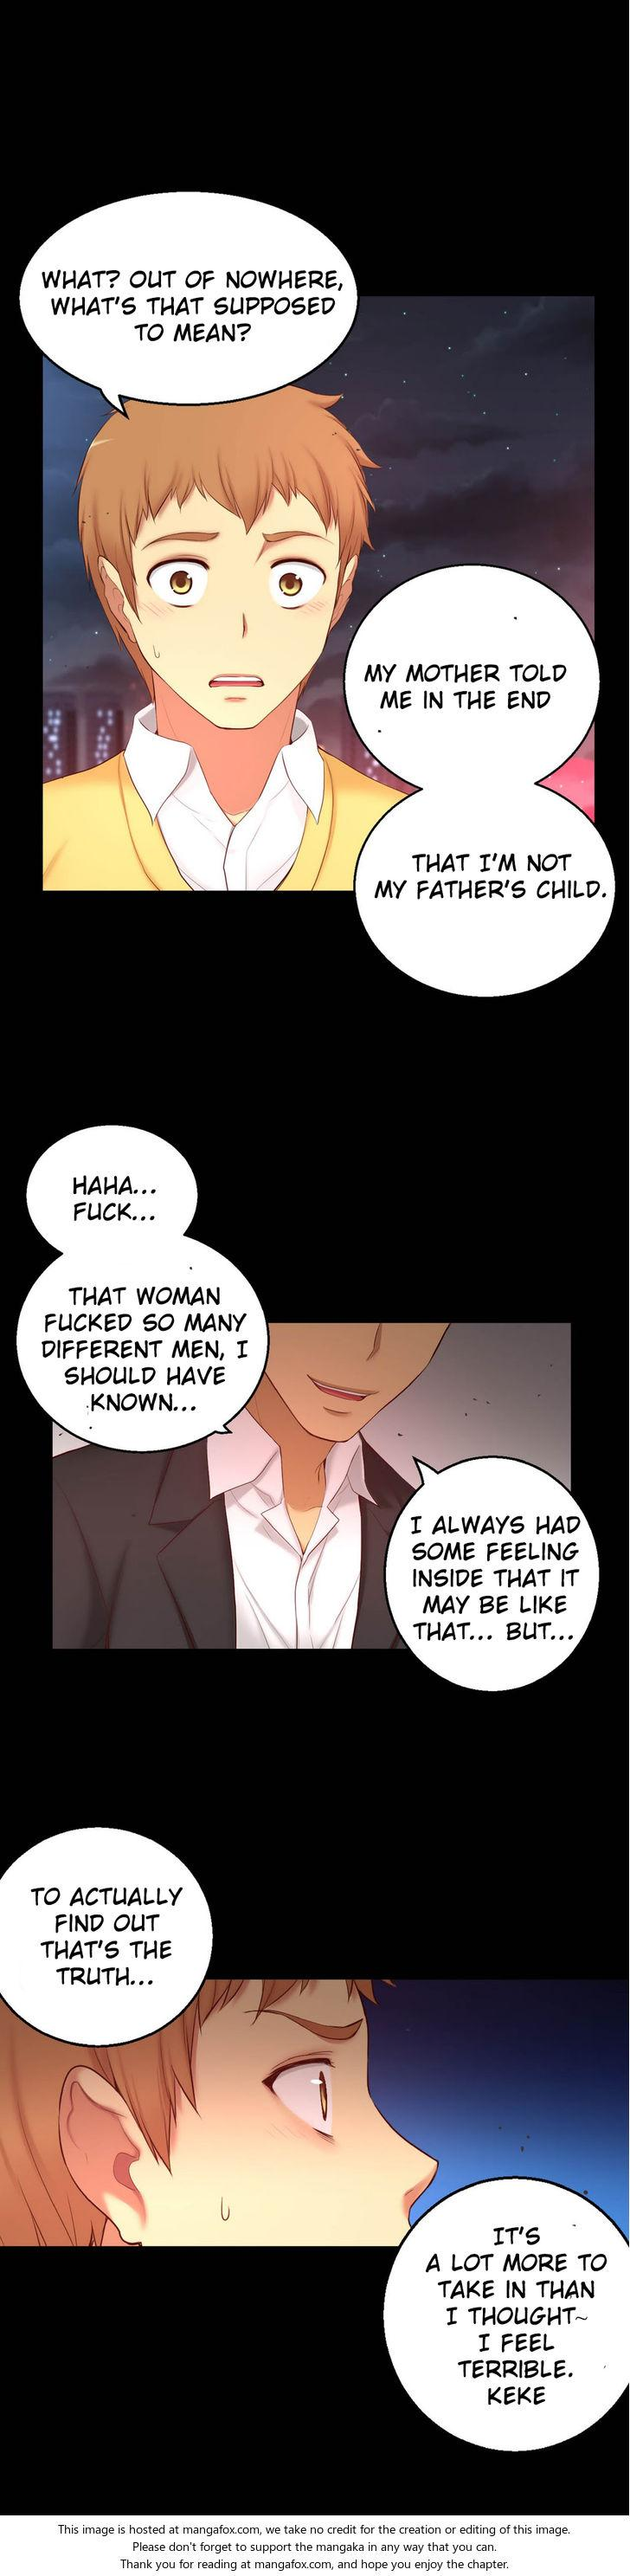 [Donggul Gom] She is Young (English) Part 1/2 1439